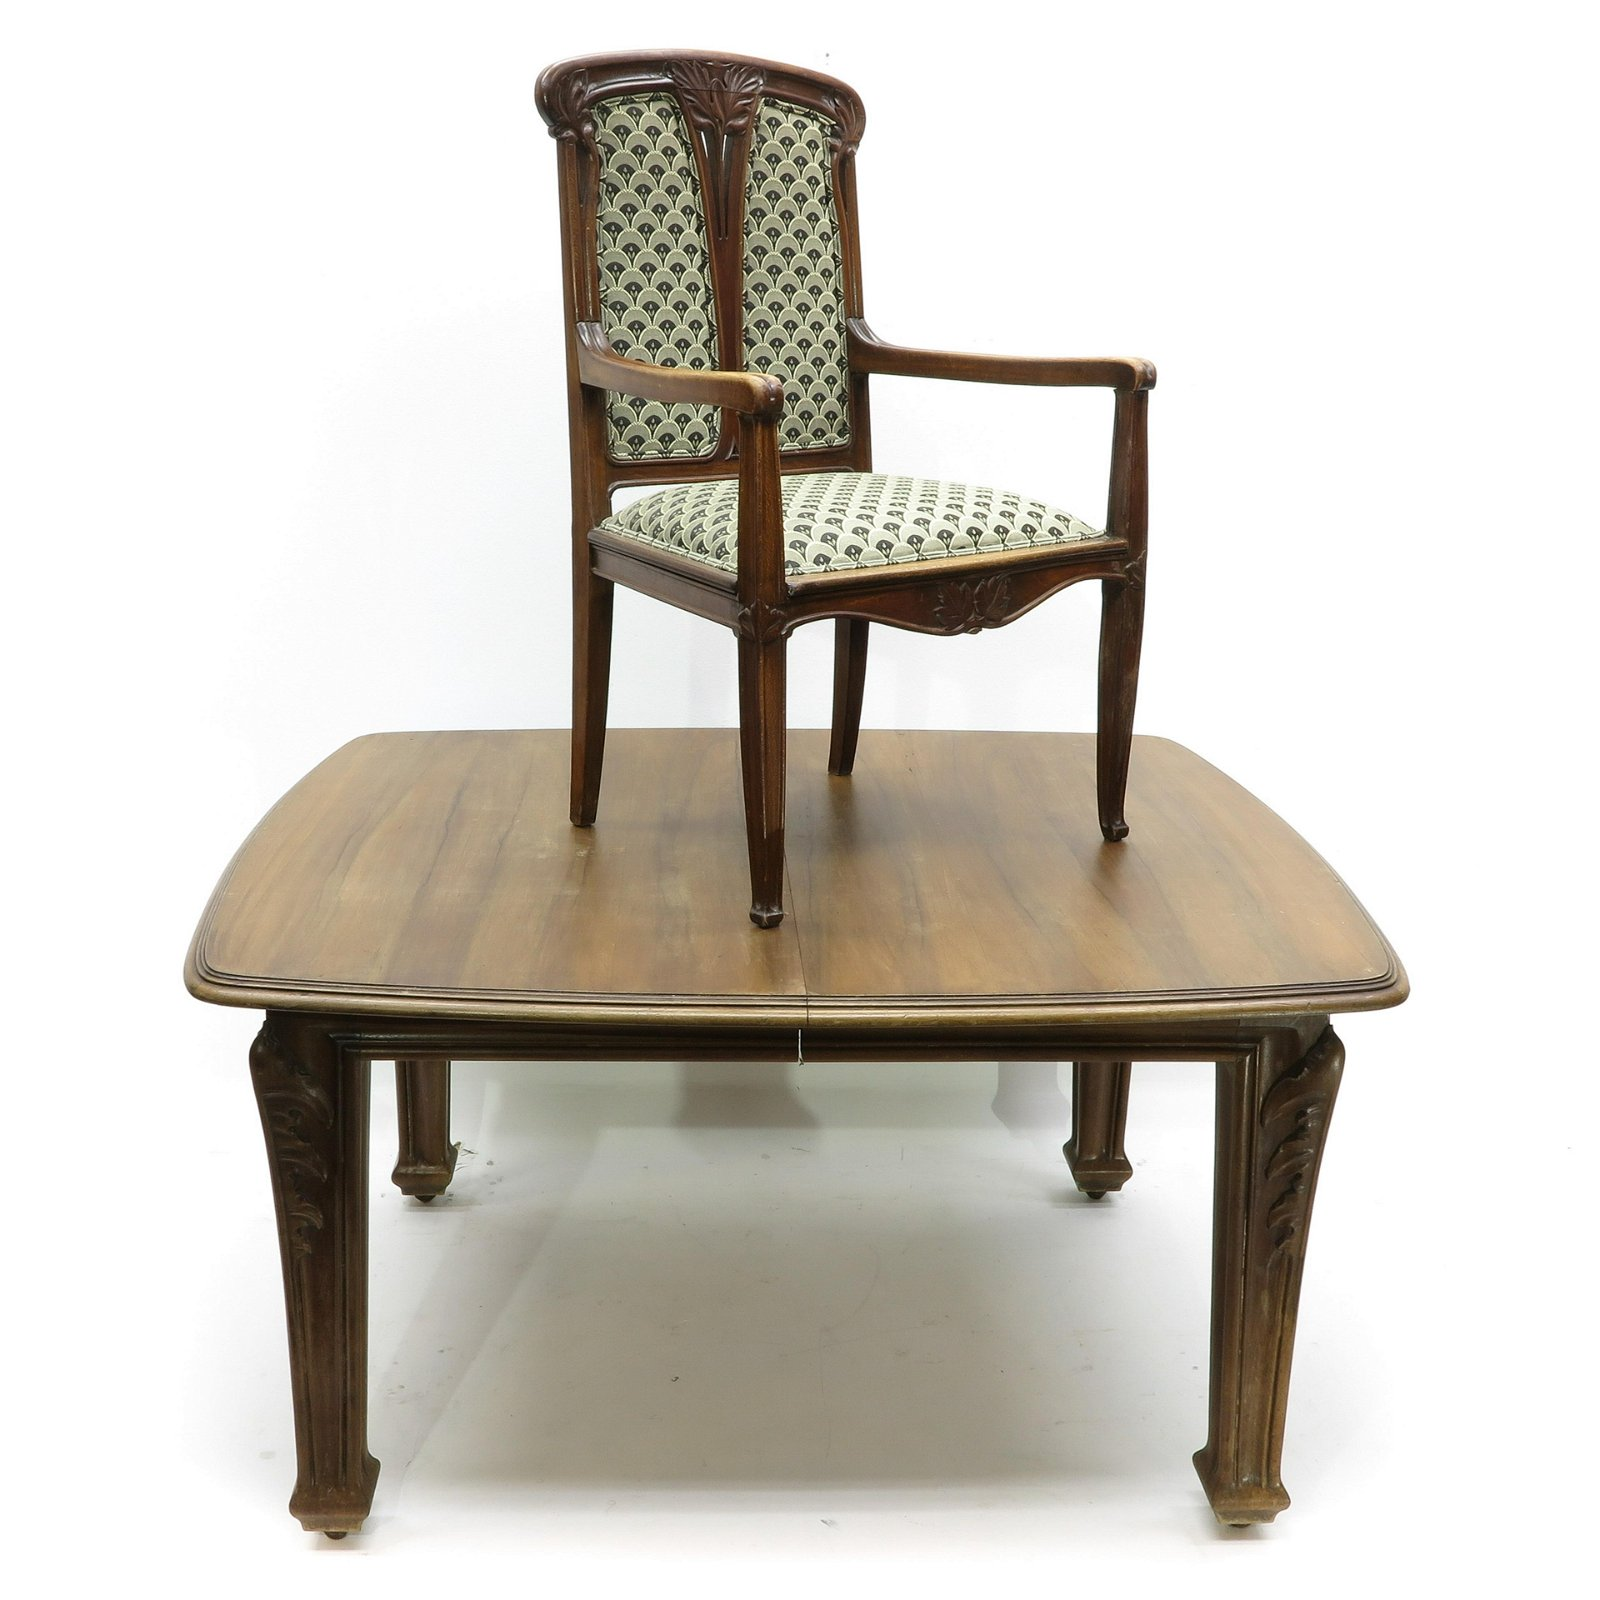 A Art Nouveau Table and Chair